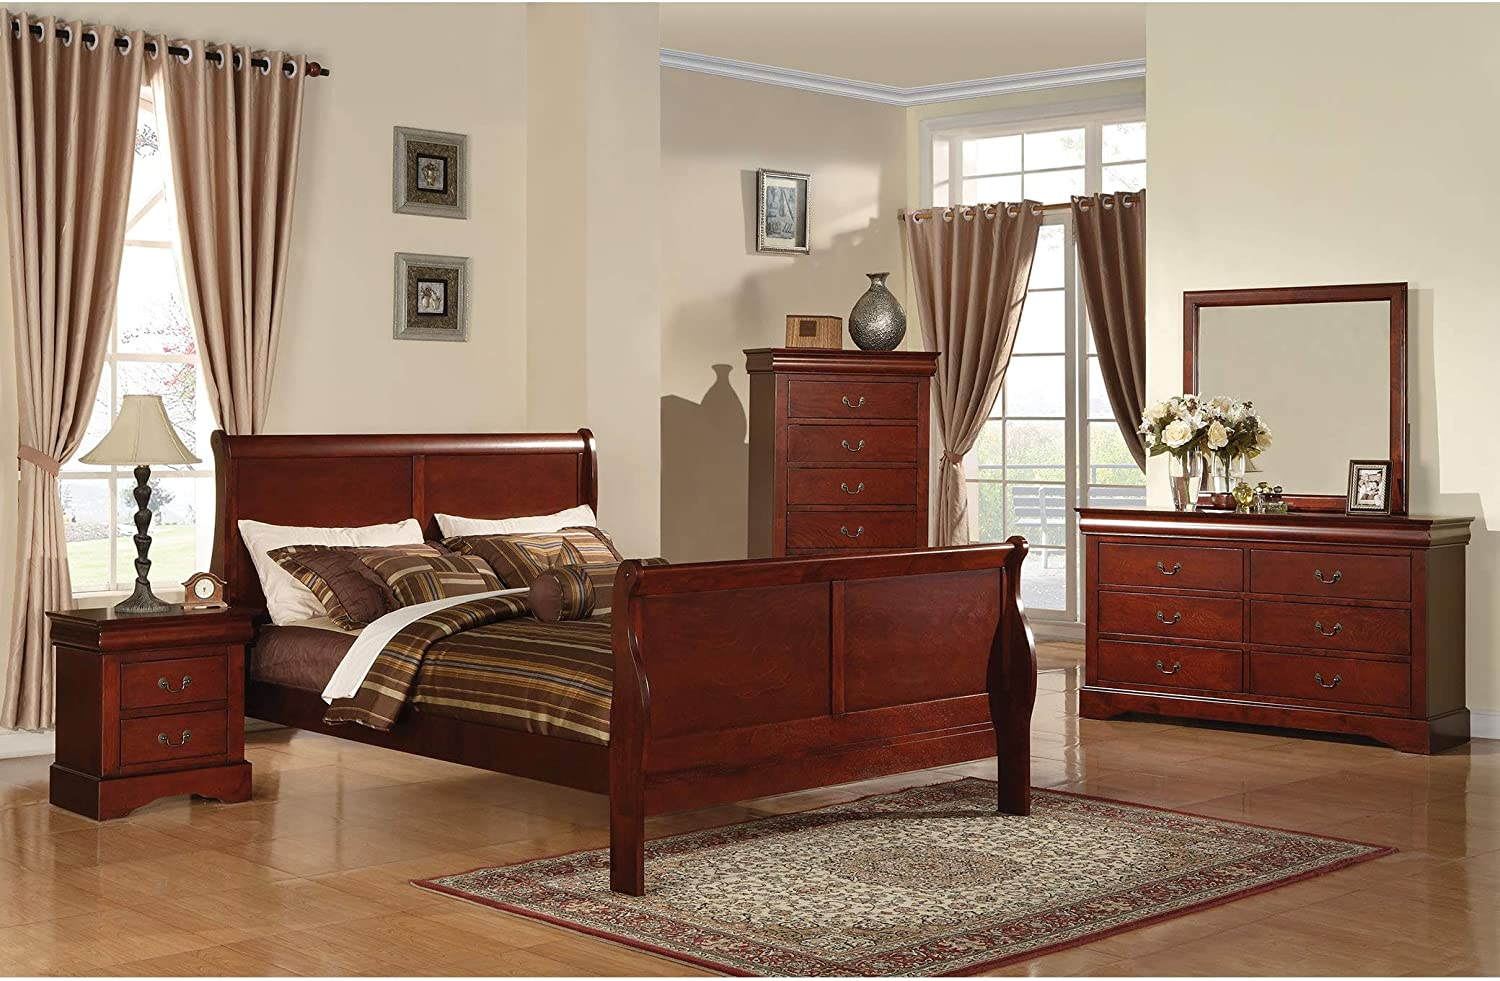 ACME Louis Philippe Cherry Full Bed